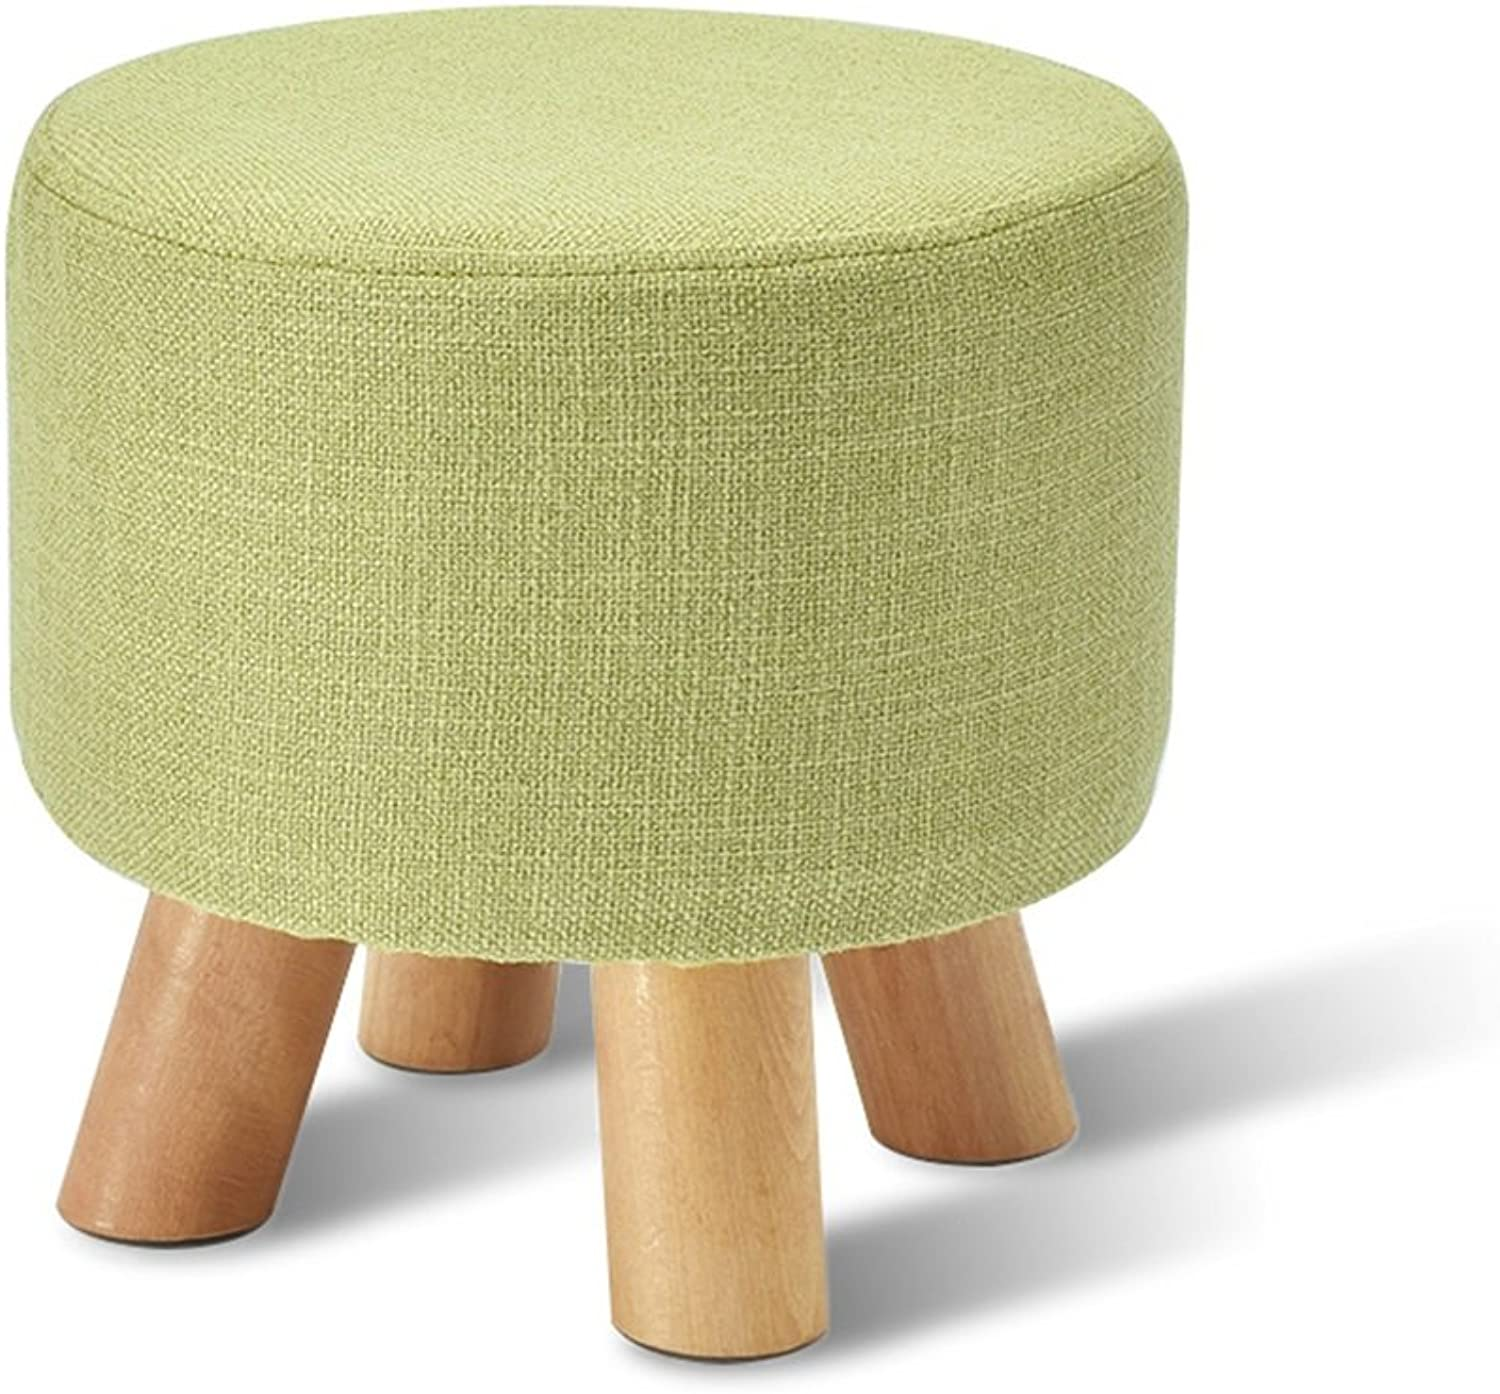 Solid Wood Stool Living Room Sofa Stool Household Stool Bed Stool Stools Multifunctional Footstool Coffee Table Stool Creative shoes bench Bench 29  27cm (color   Green)